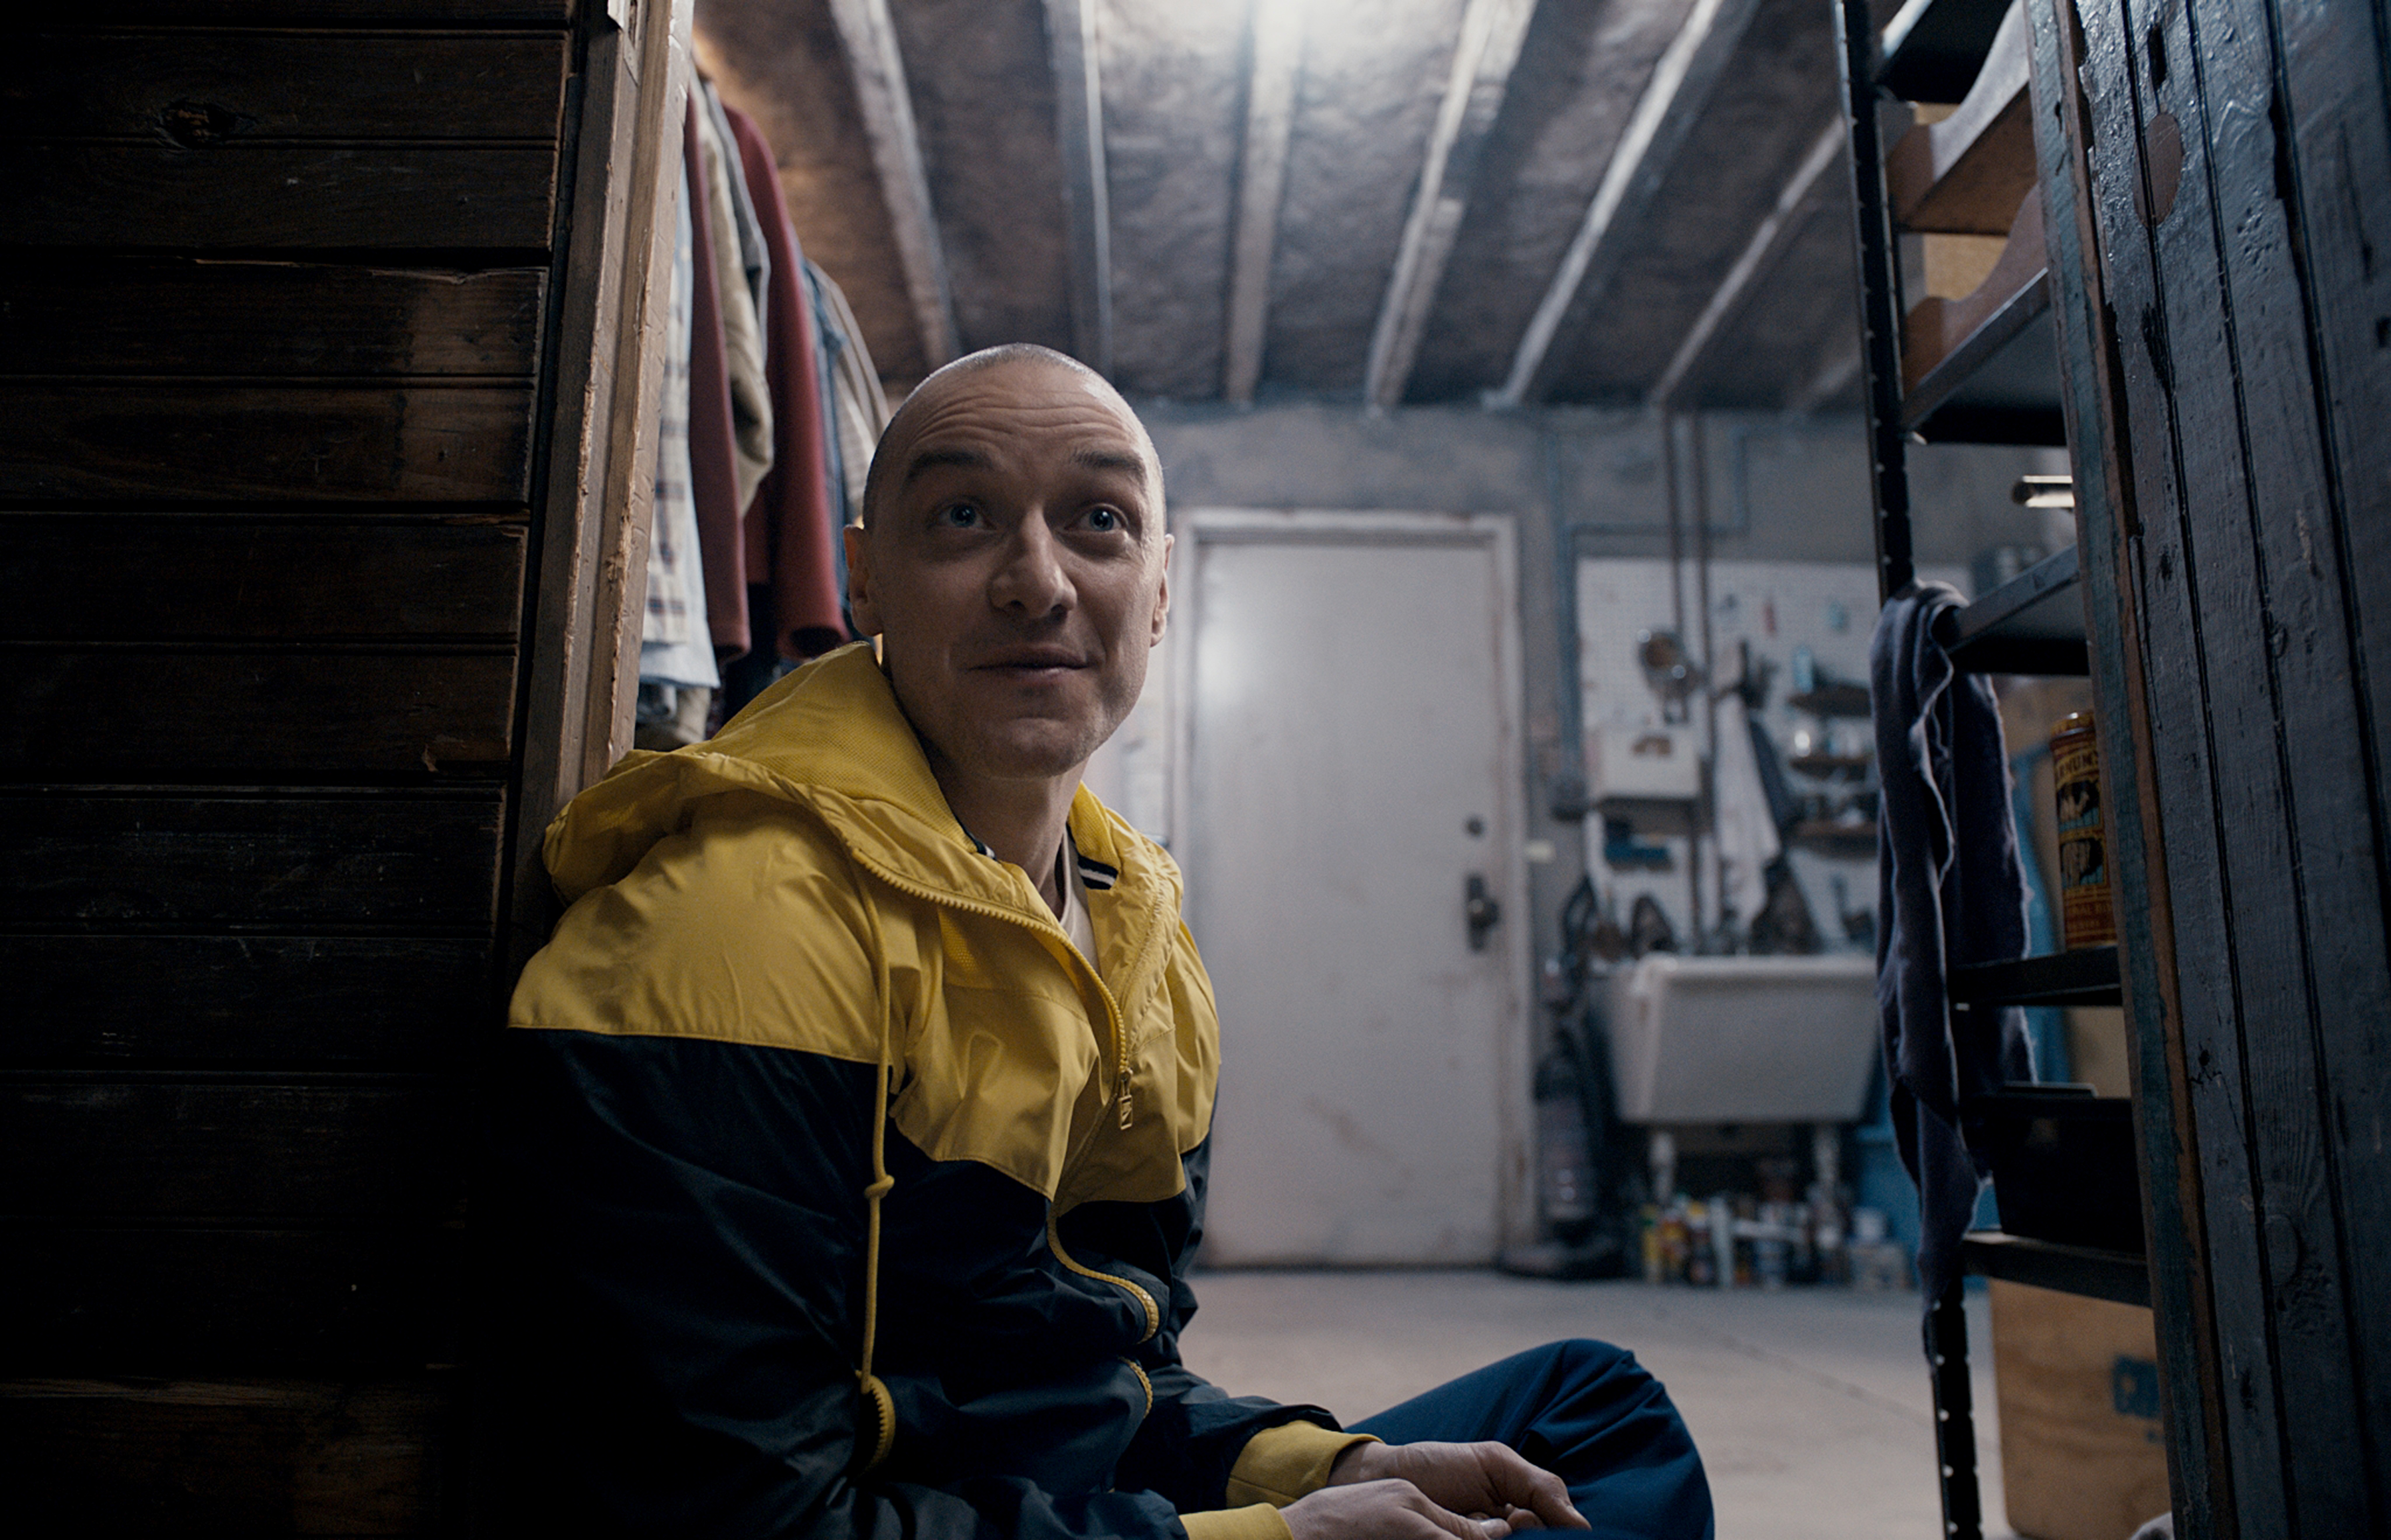 A screenshot of James McAvoy, in Split. He is sitting on the left side of the screen, staring into the camera with a creepy expression on his face. His head is nearly bald, with some shaved black stubble on the back of his head. He wears a yellow and black winter jacket. He is in some old garage or shed or basement, with a doorway in the background and a shelf with stuff on it, like paint cans, is visible in the right foreground.